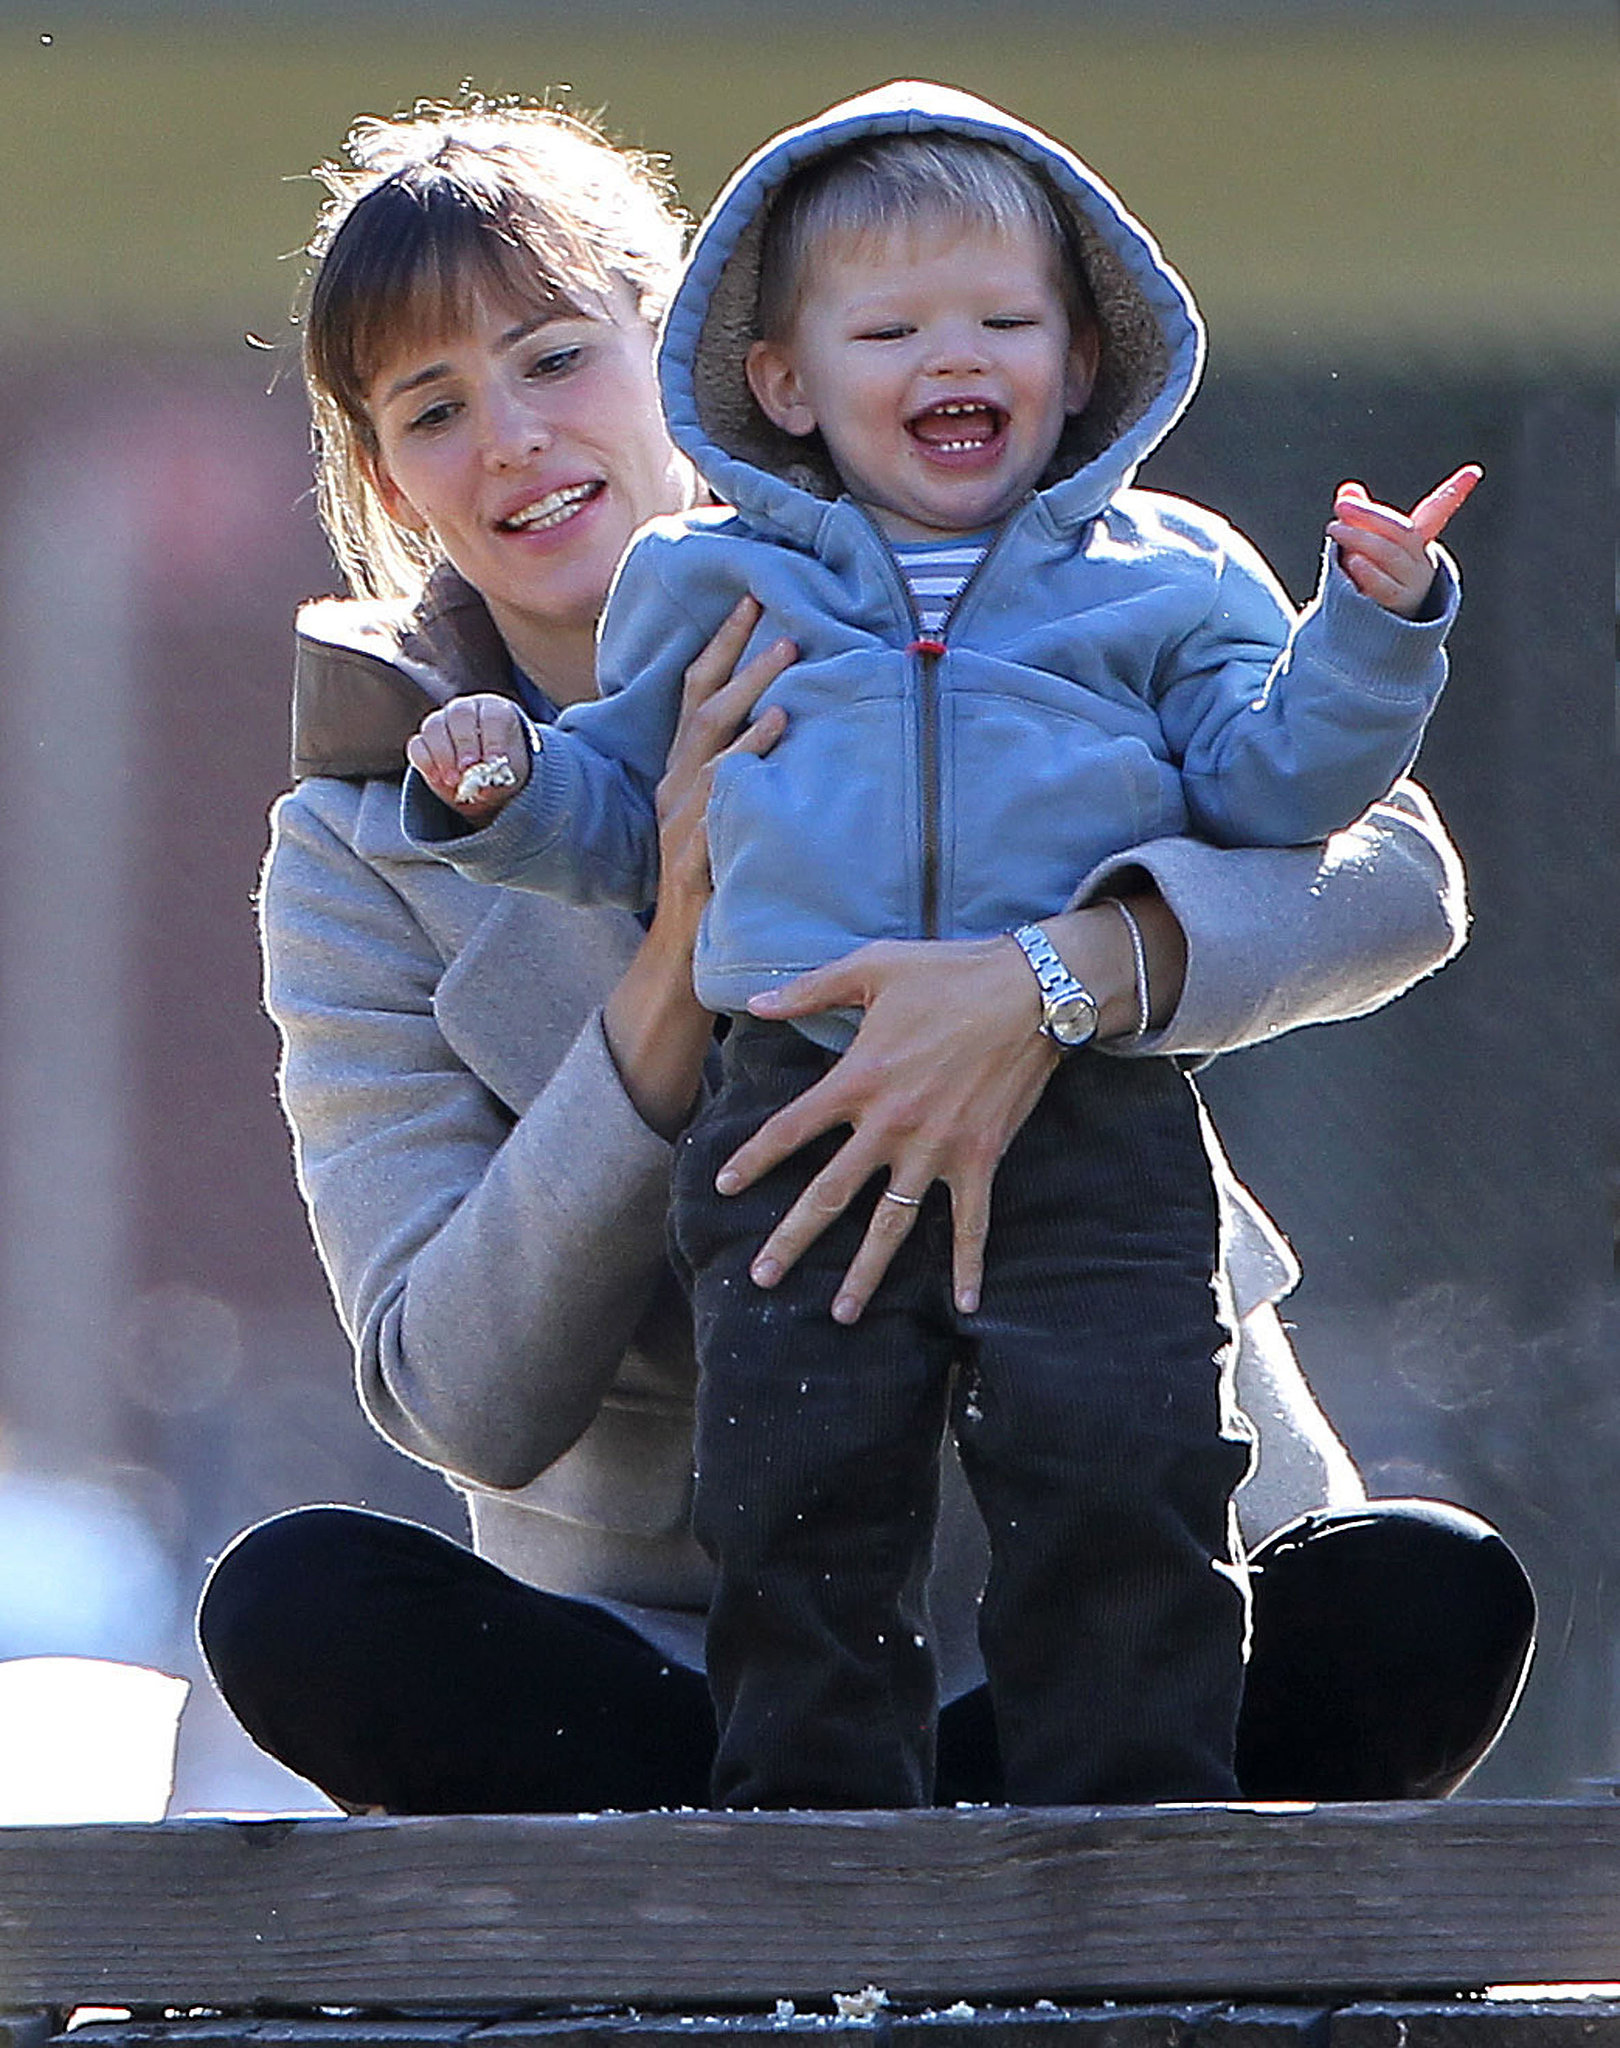 Jennifer Garner had a park day with her son, Samuel Affleck, in LA.